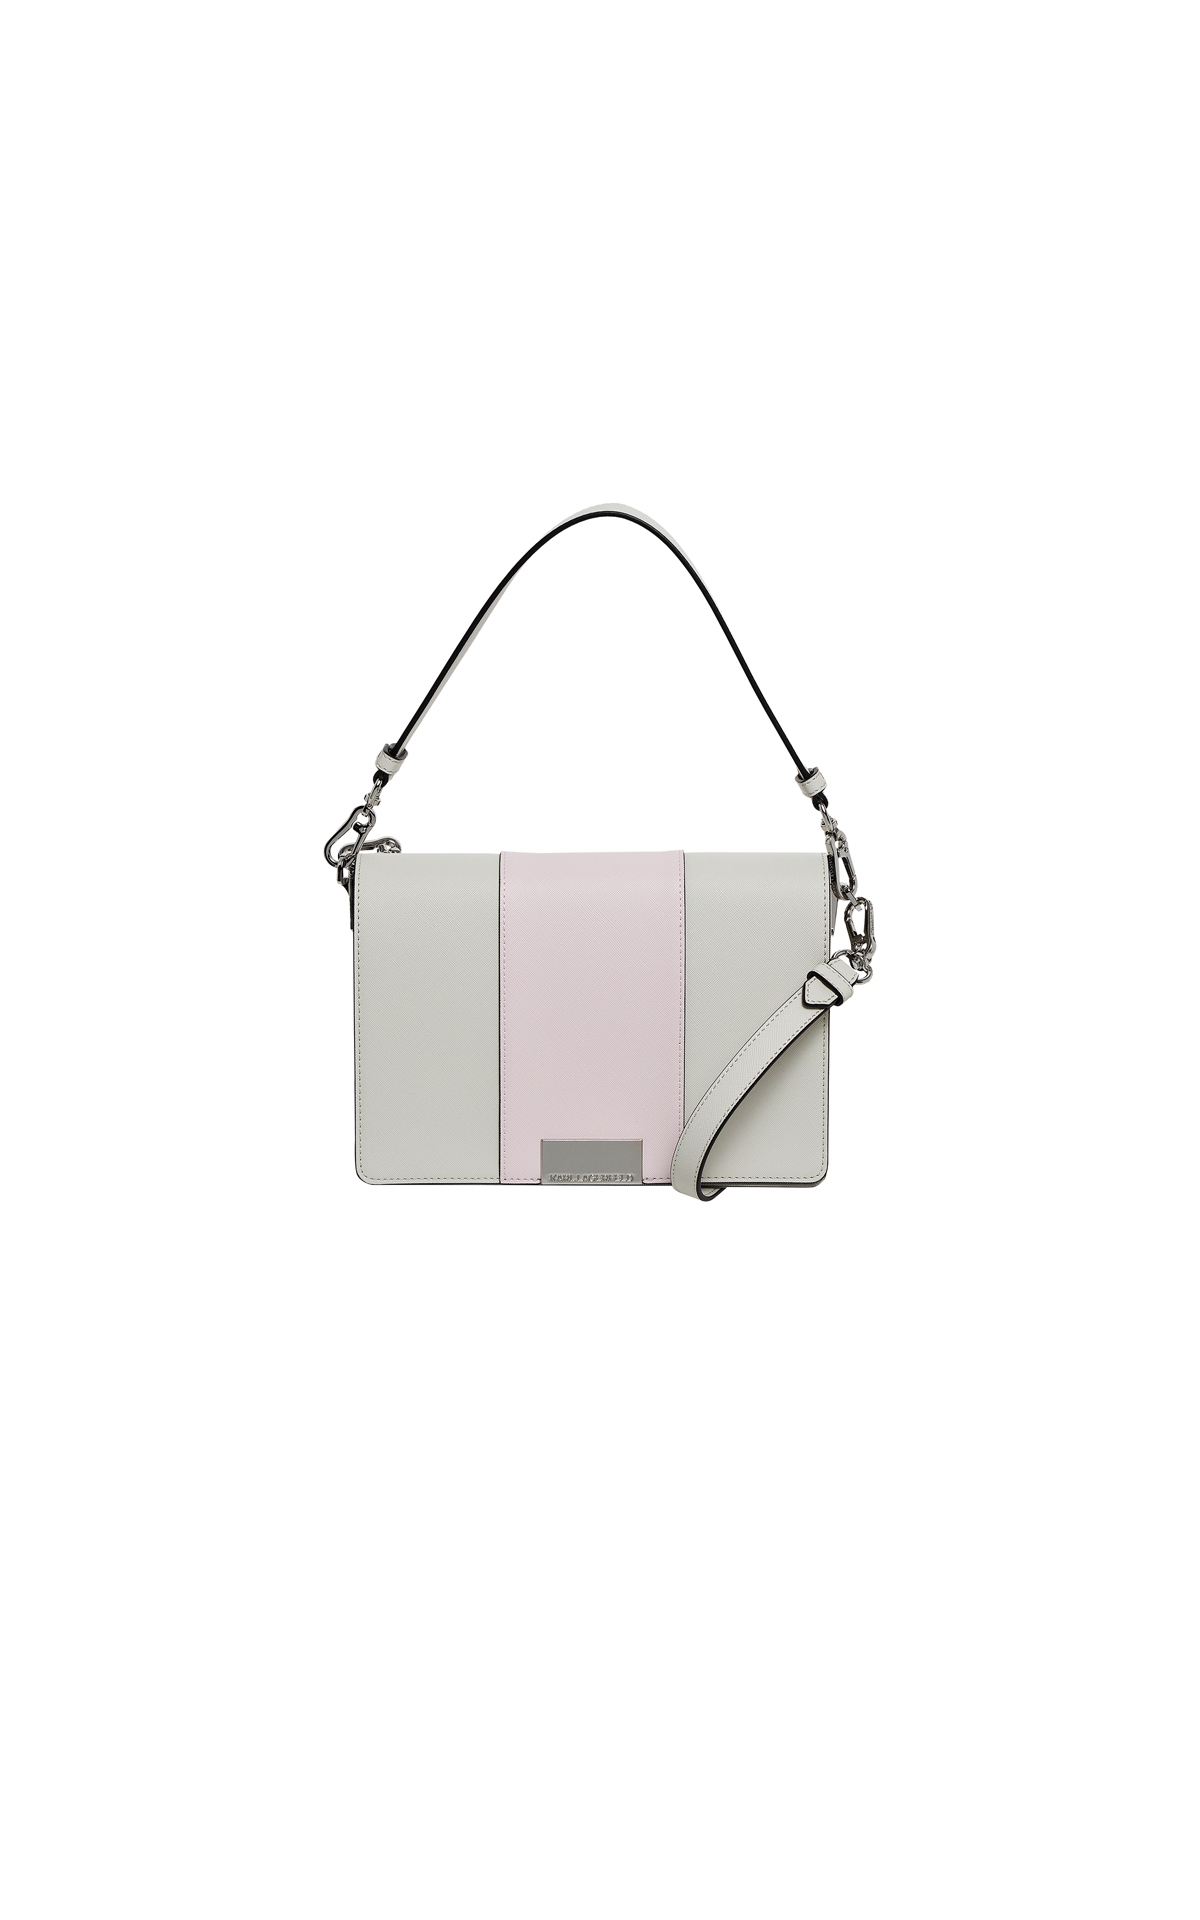 Karl Lagerfeld K Mau Shoulder Bag at The Bicester Village Shopping Collection